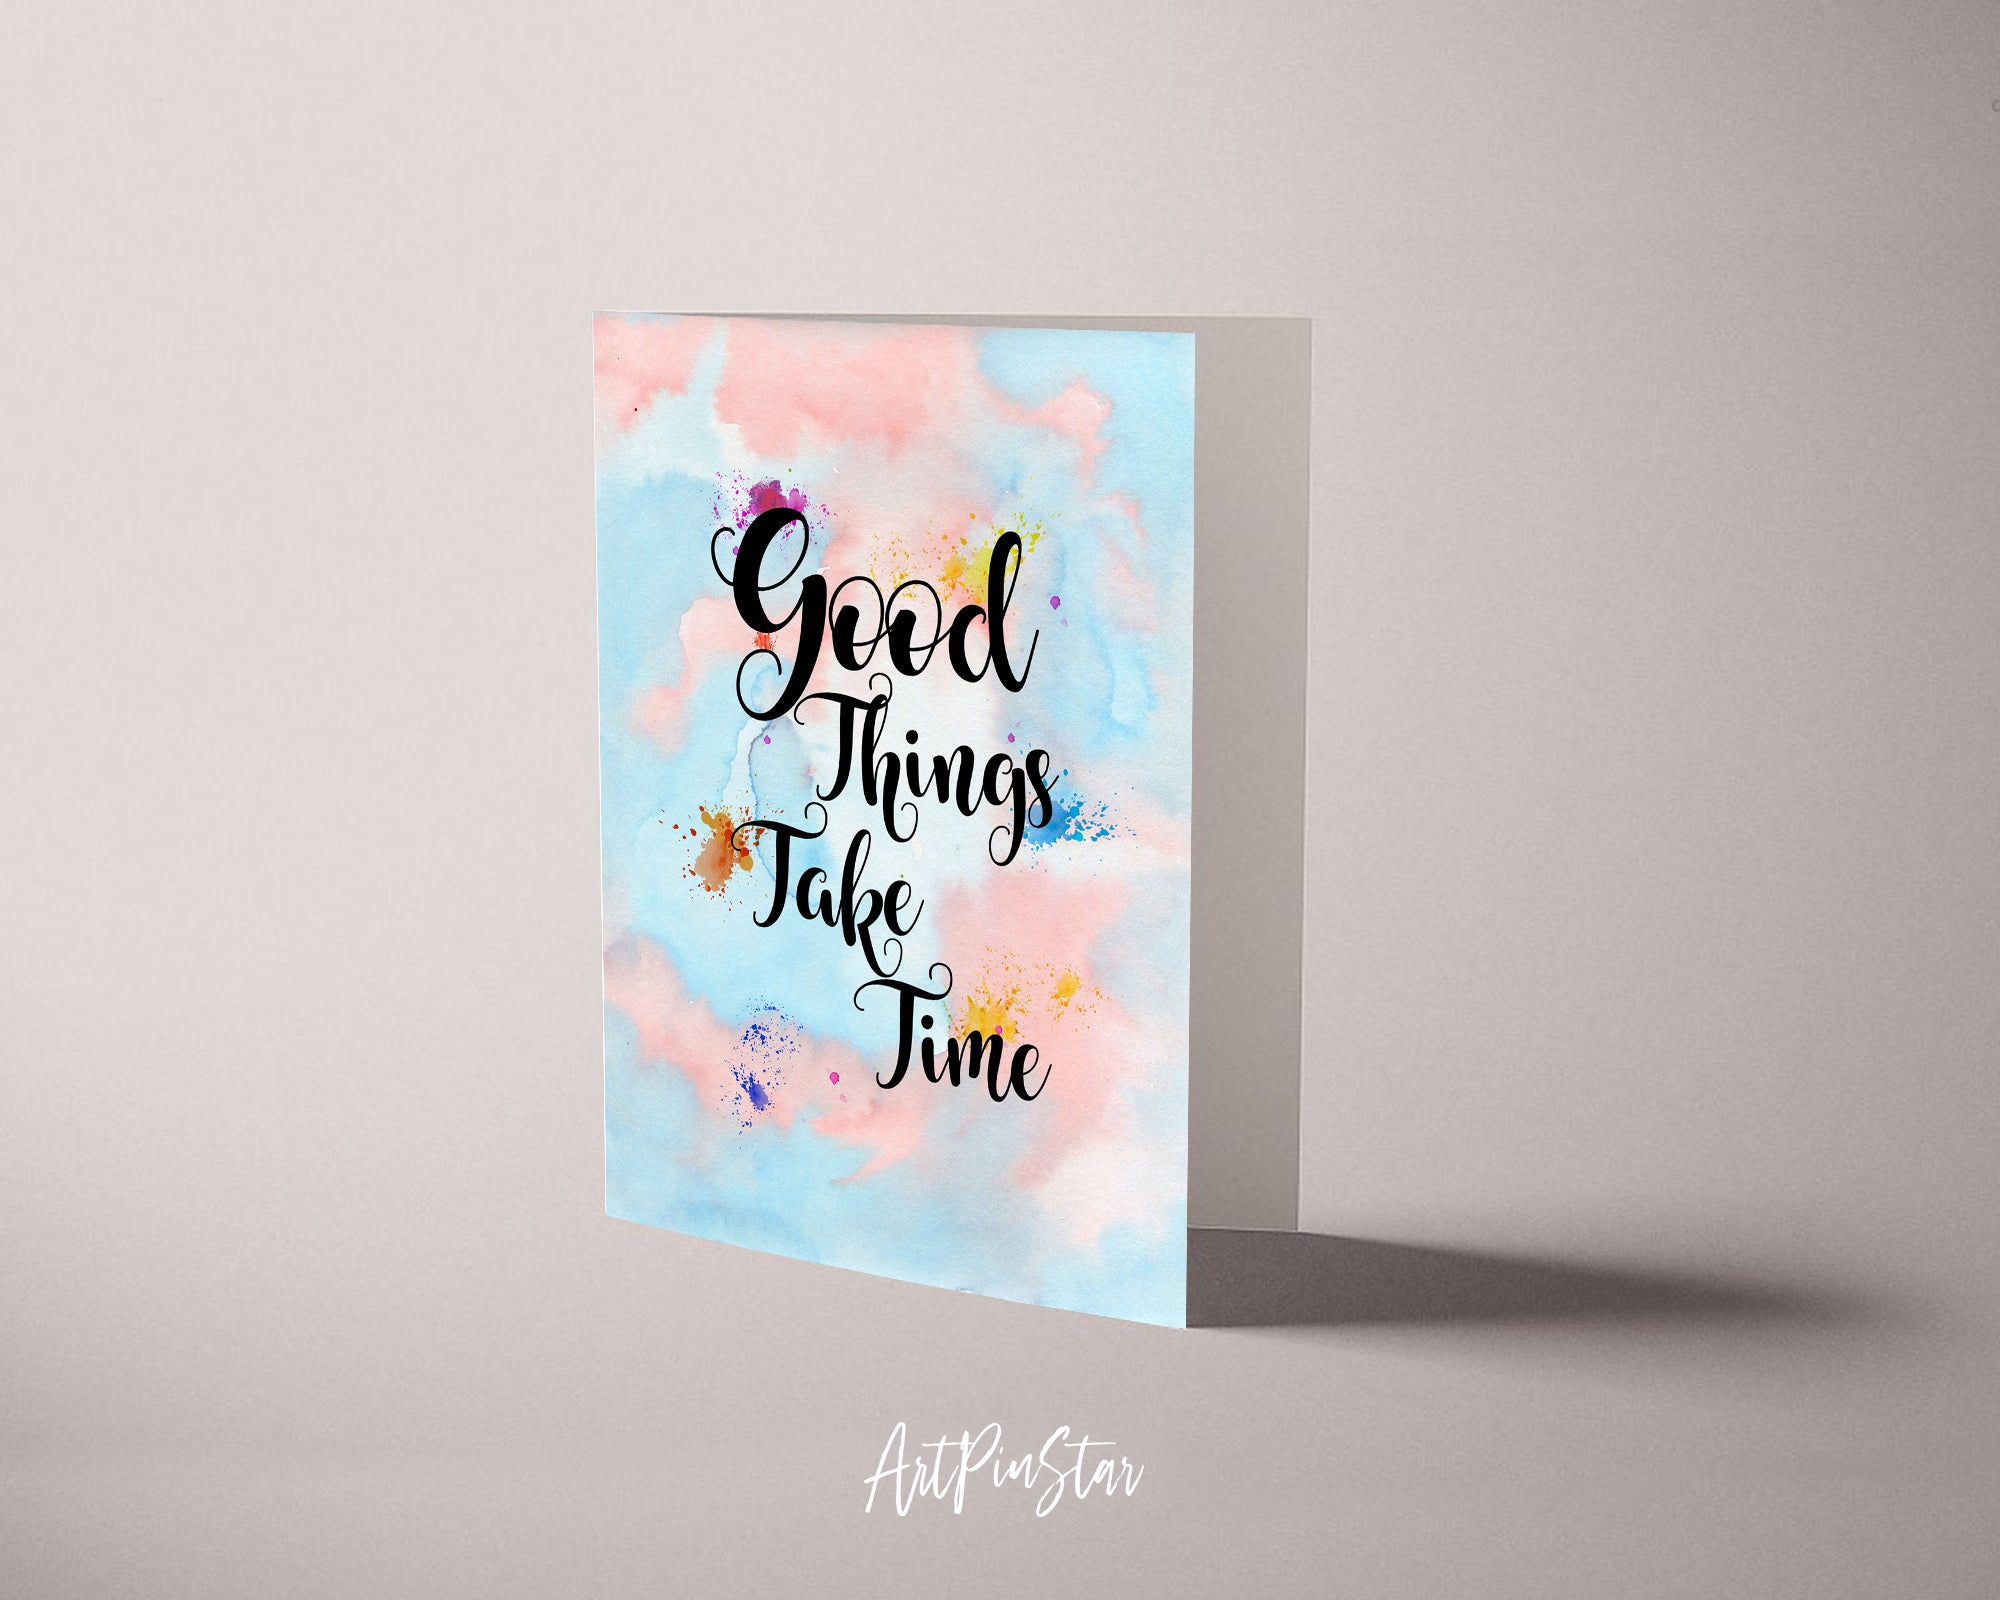 Good things take time Robin Sharma Powerful Quote Customized Greeting Cards